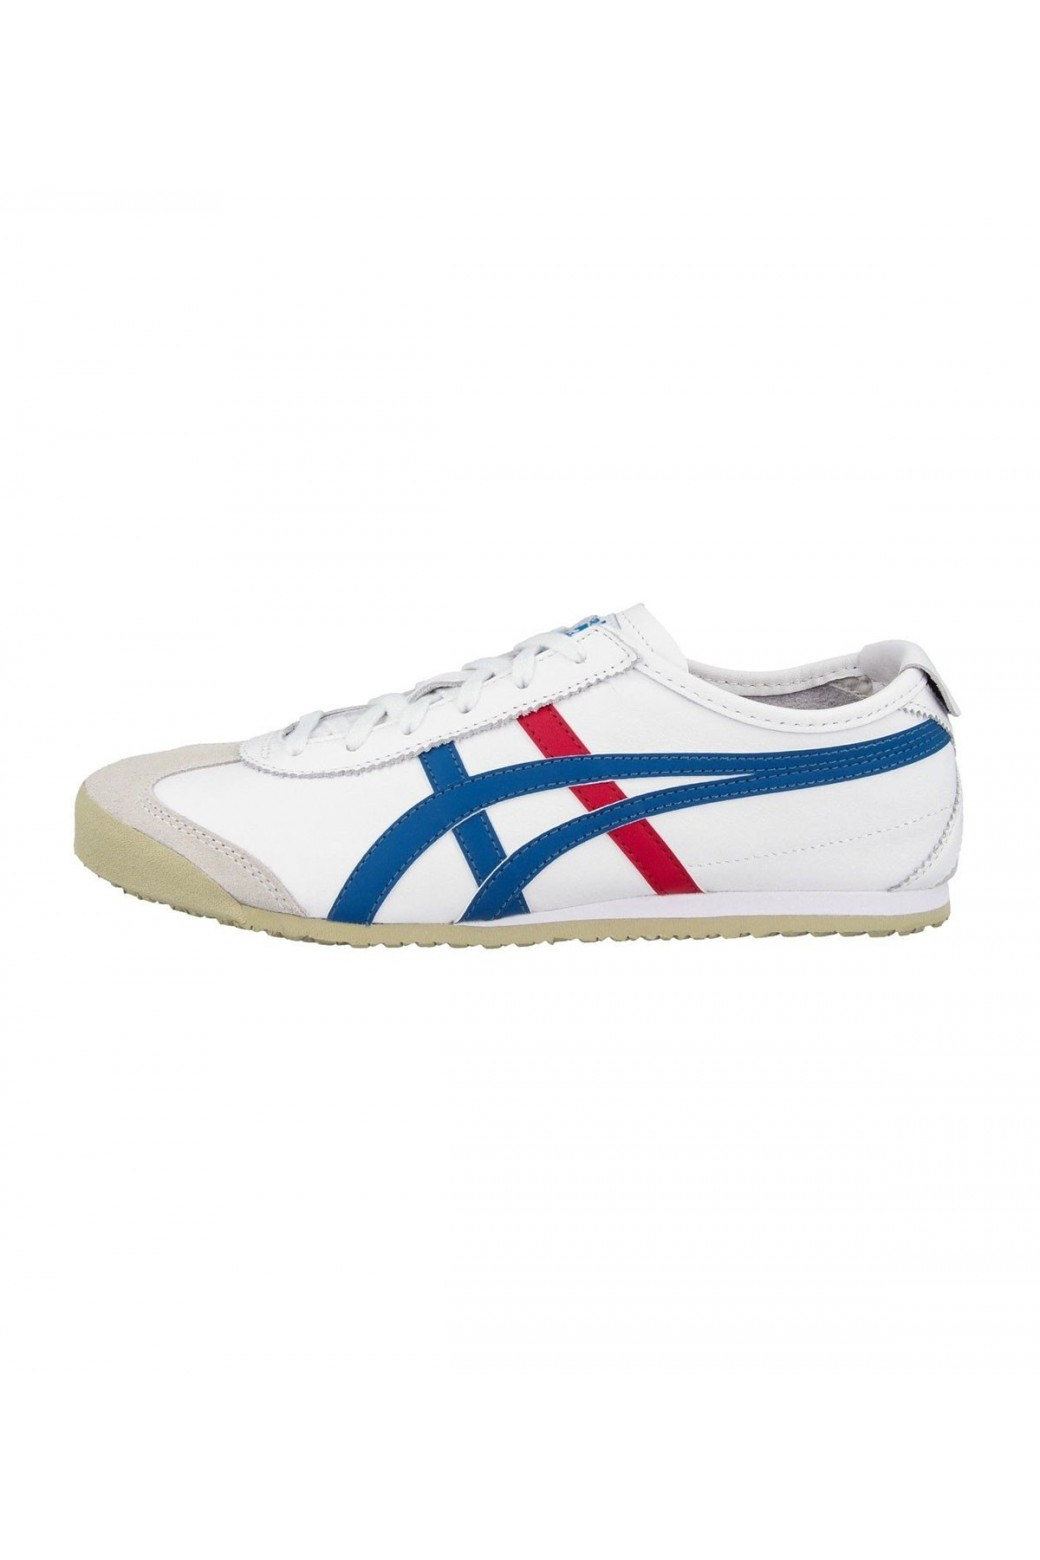 onitsuka tiger mexico 66 shoes online oficial lima